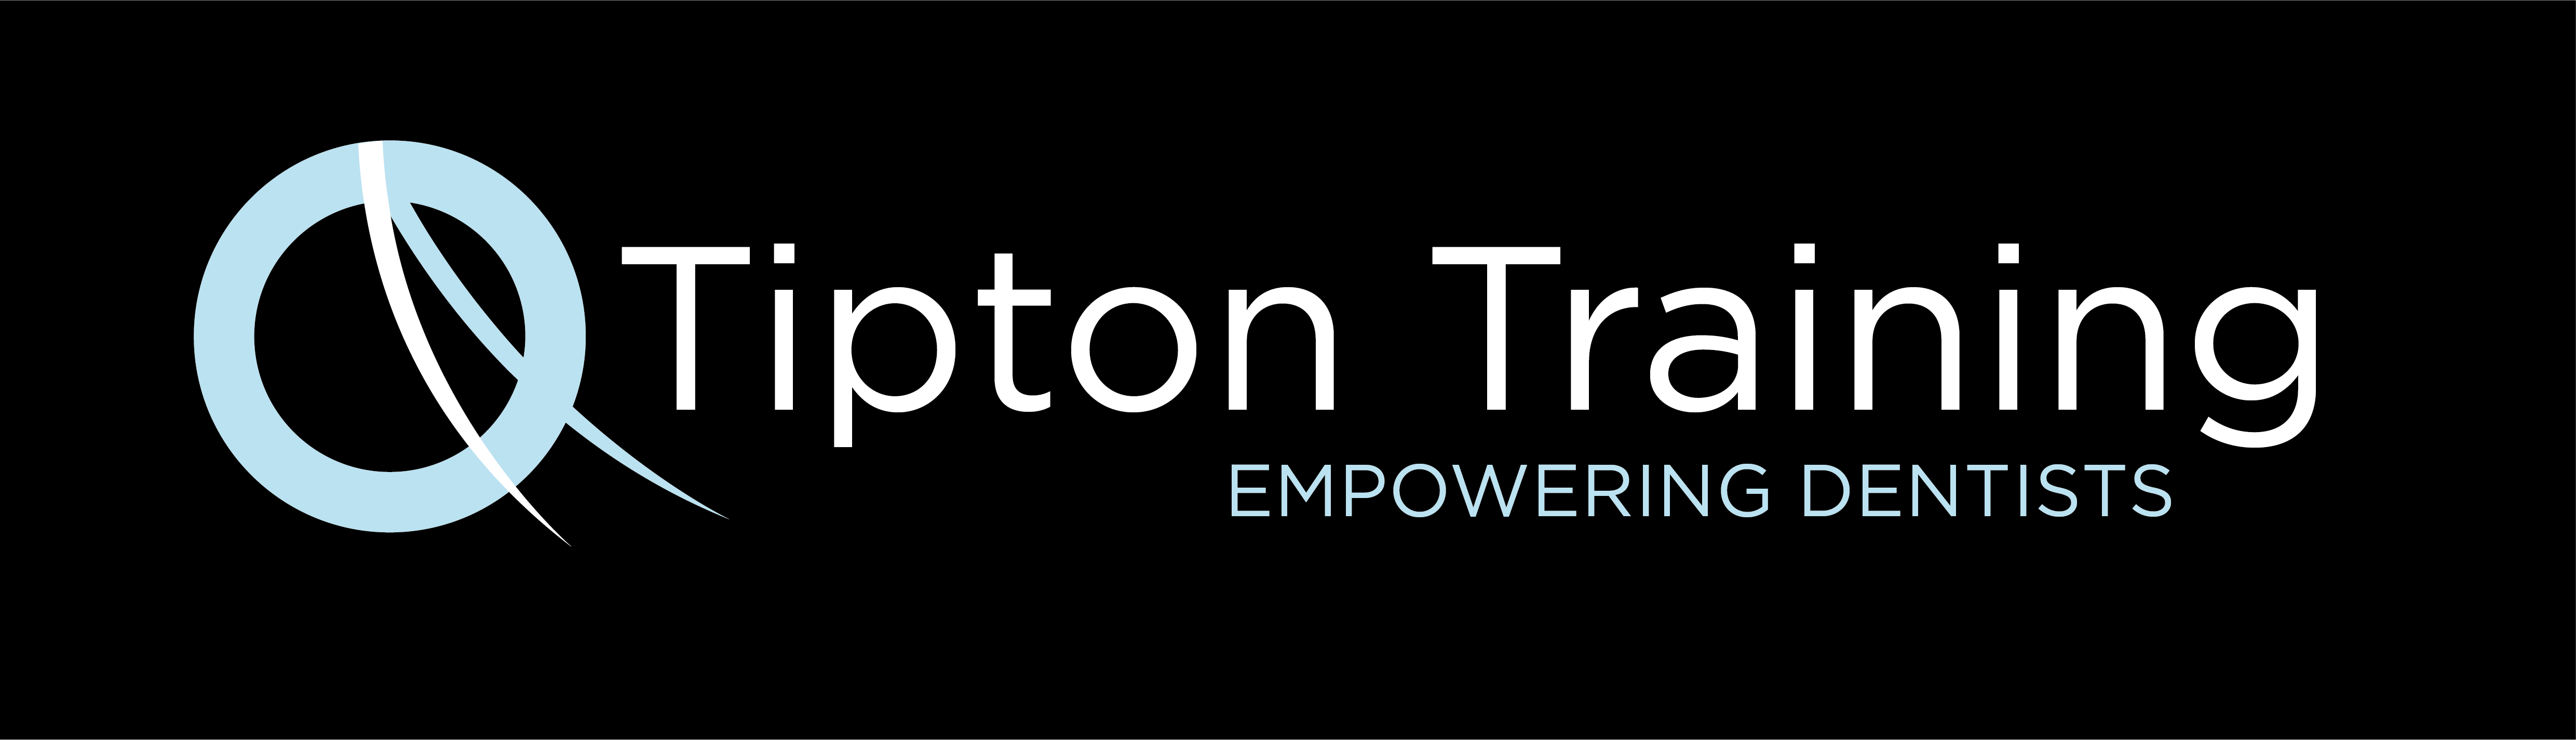 tipton-training-logo